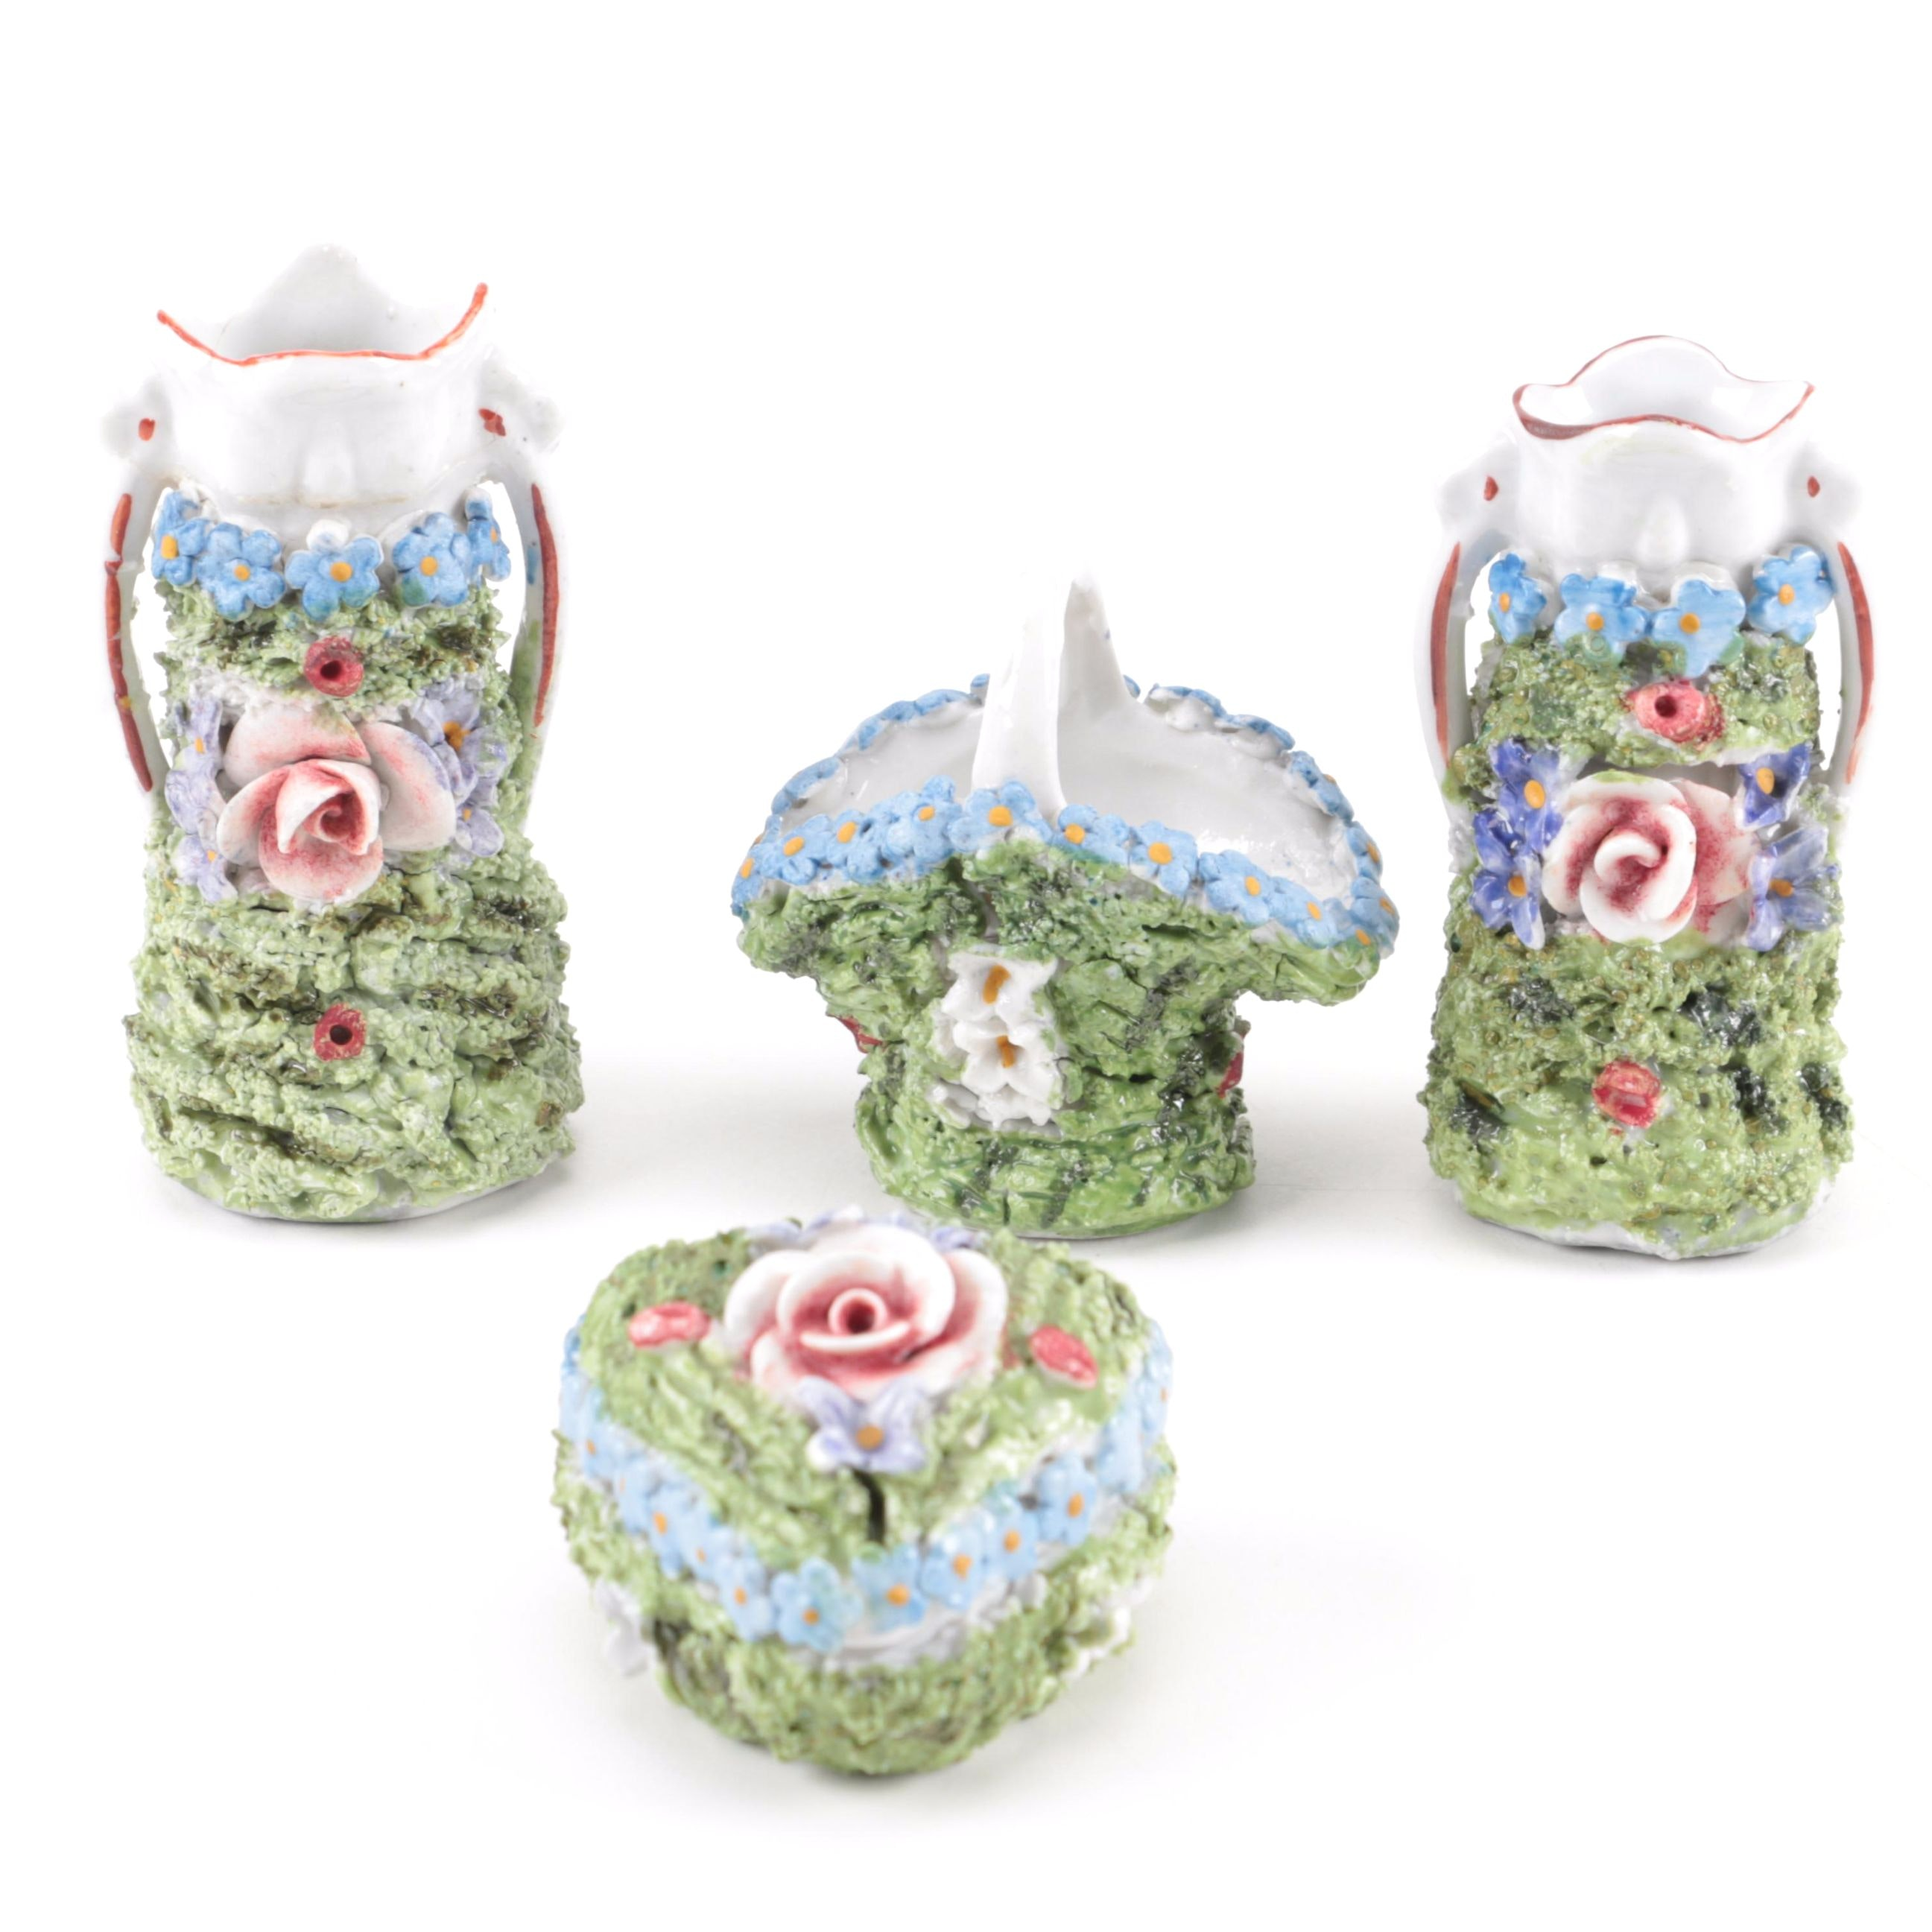 Elfinware Floral Motif Ceramic Vases and Trinket Box from Germany